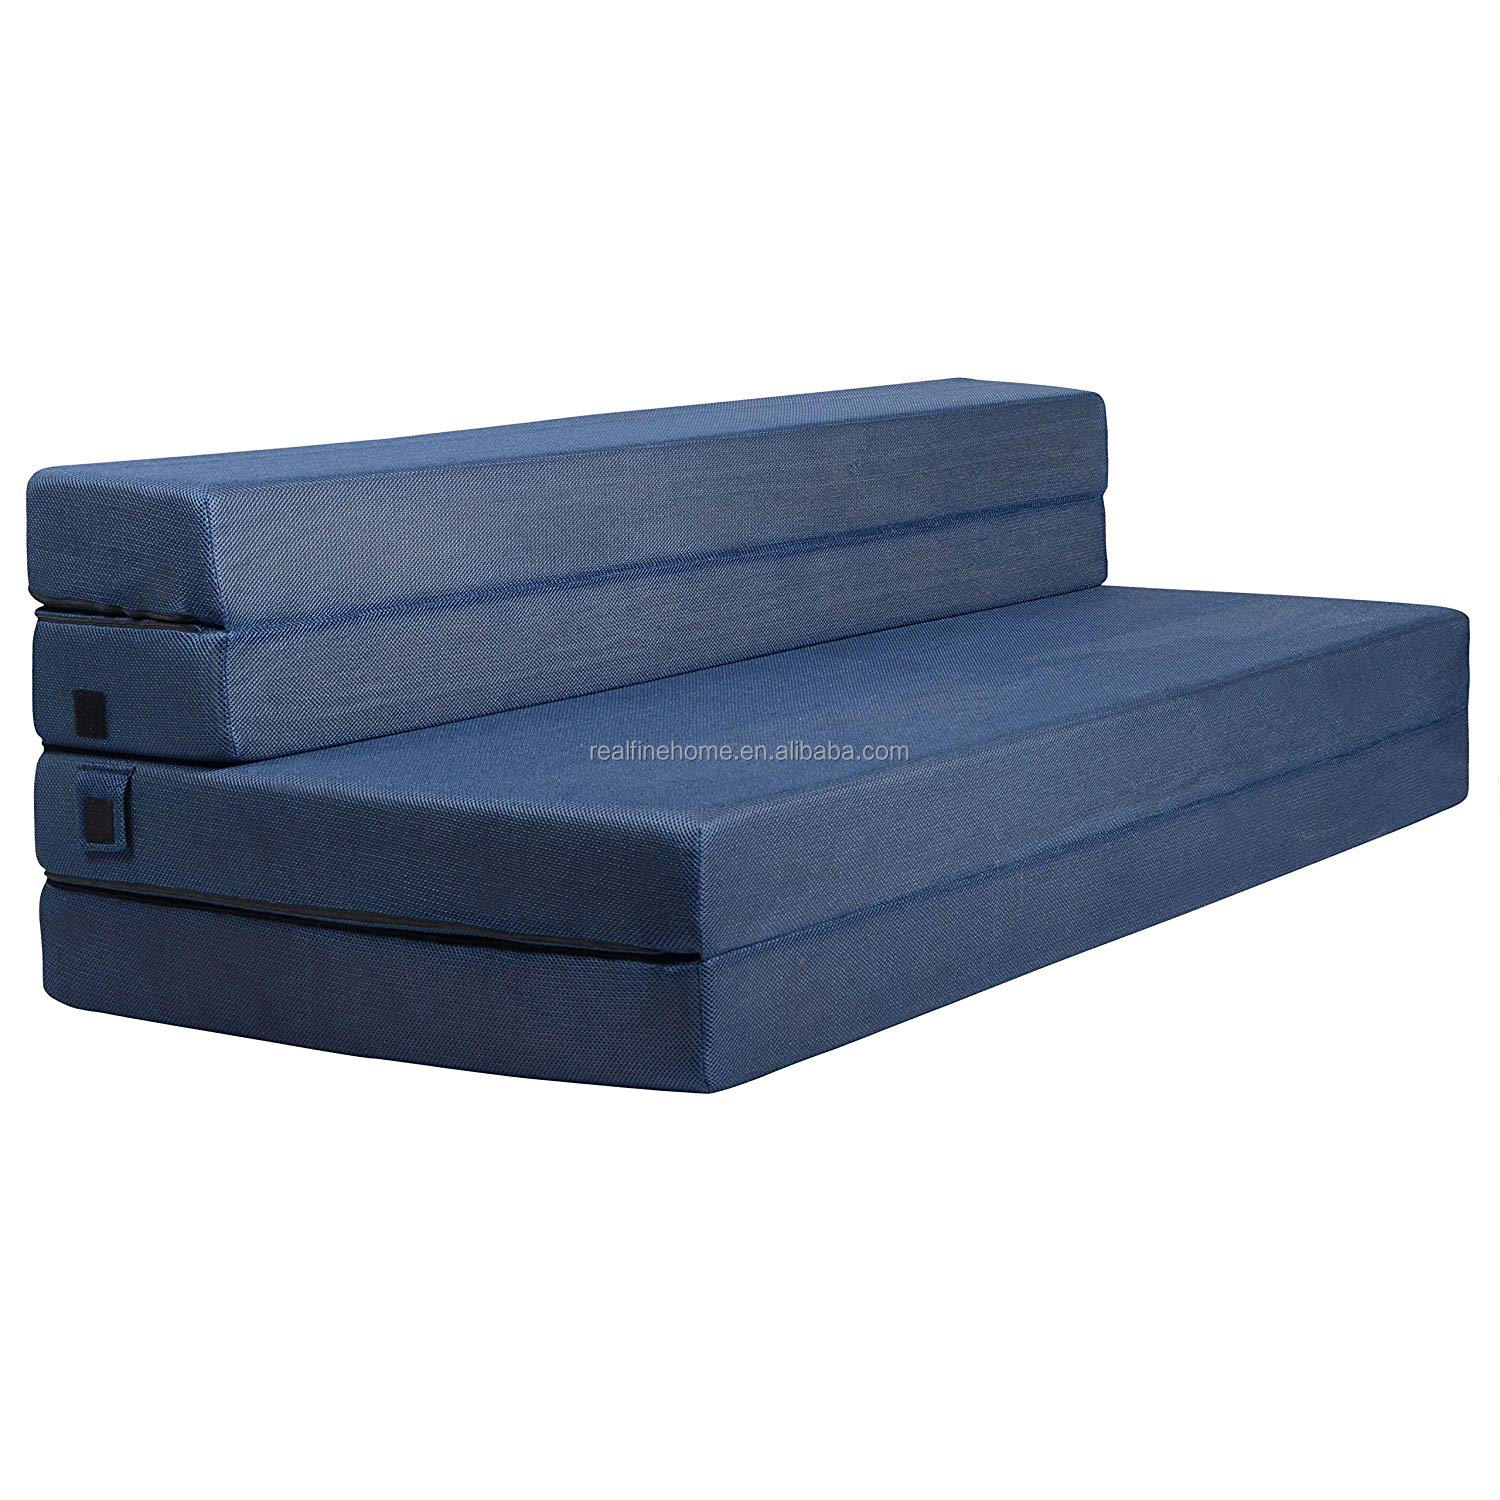 4 Pieces Folding Foam Folding Mattress And Sofa Bed For Guests Queen 78x58x4 5 Inch Buy Tri Fold Foam Mattress Tri Fold Sleep Mat Foldable Foam Mattress Product On Alibaba Com